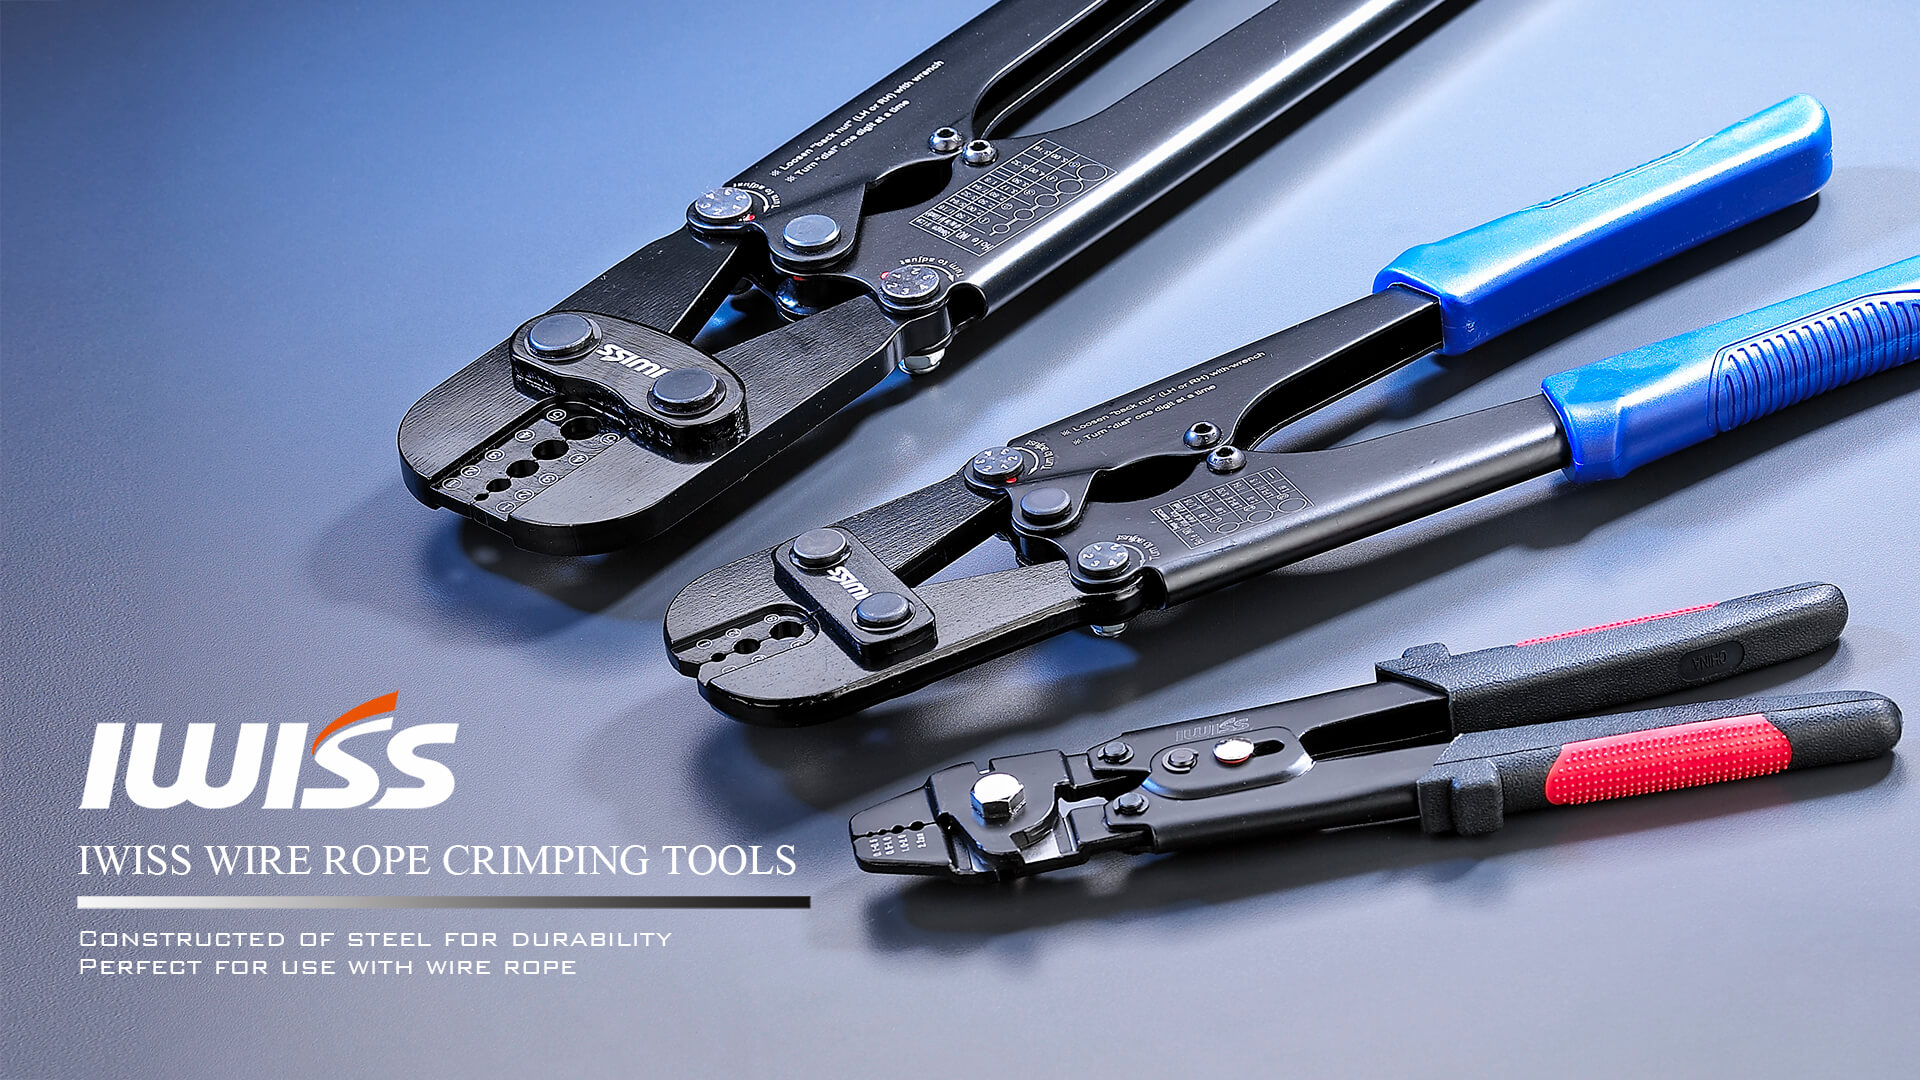 IWISS WIRE ROPE CRIMPING TOOL